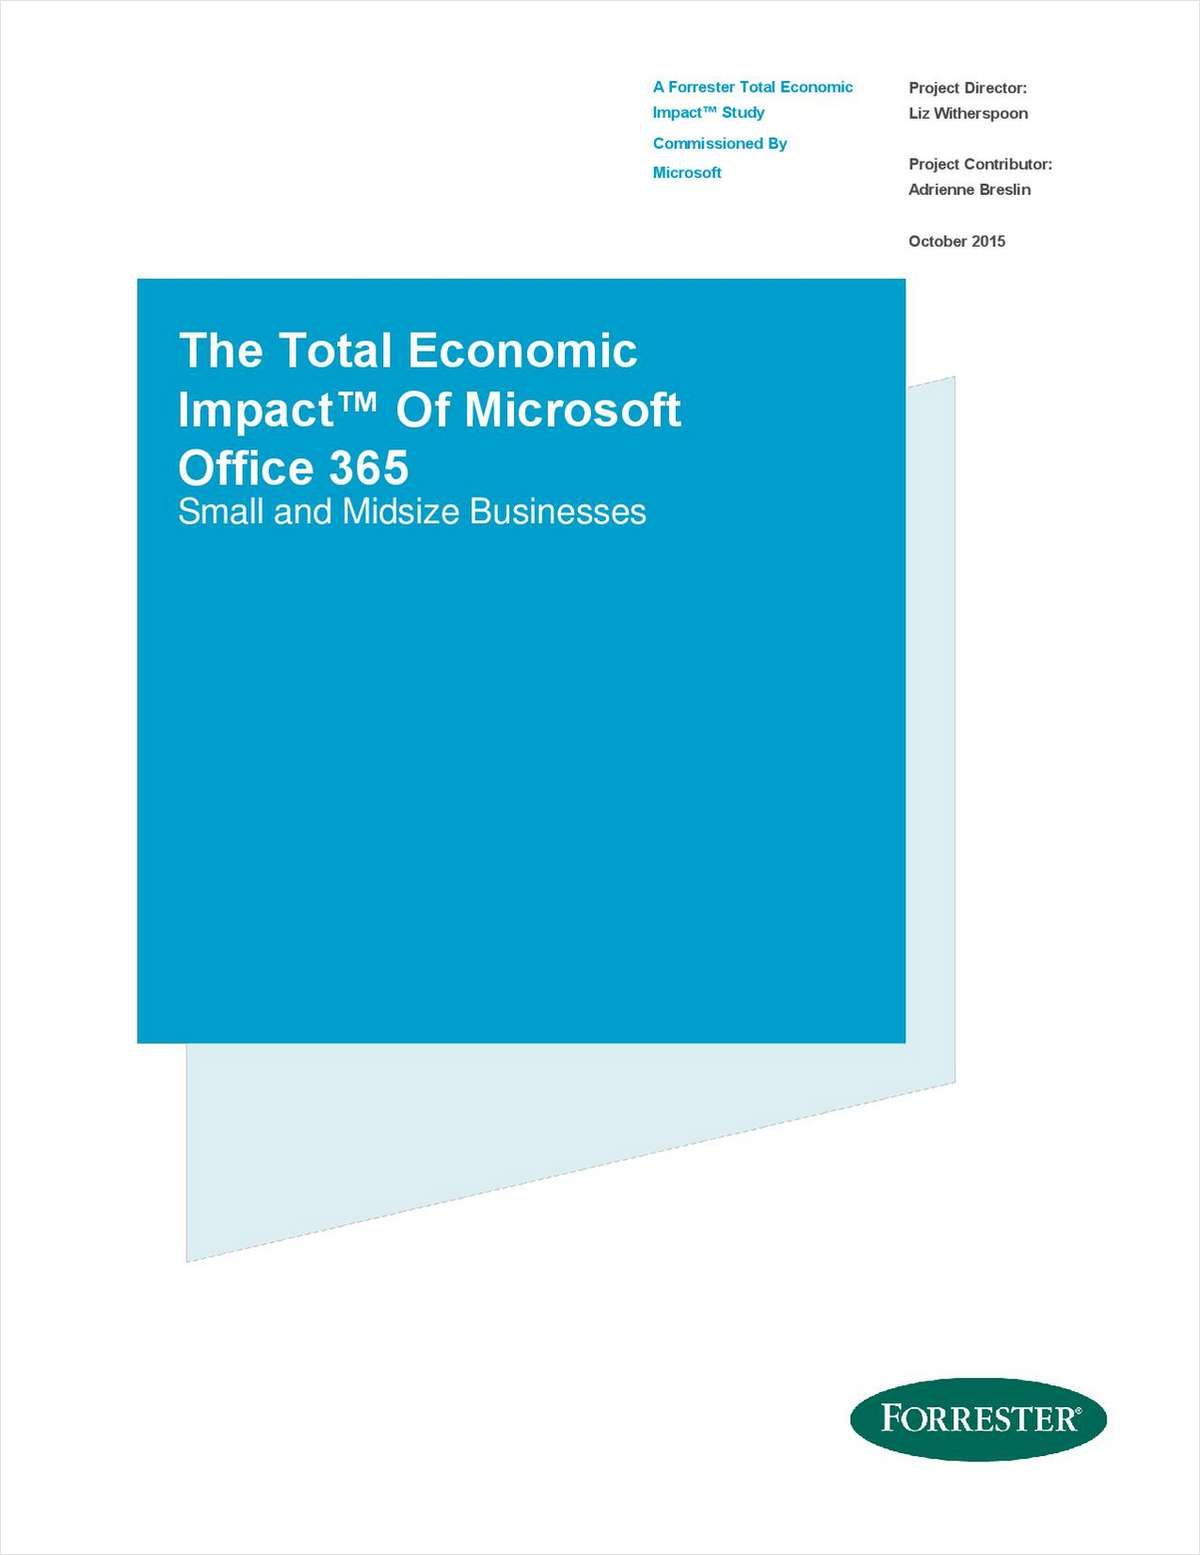 Forrester TEI Study